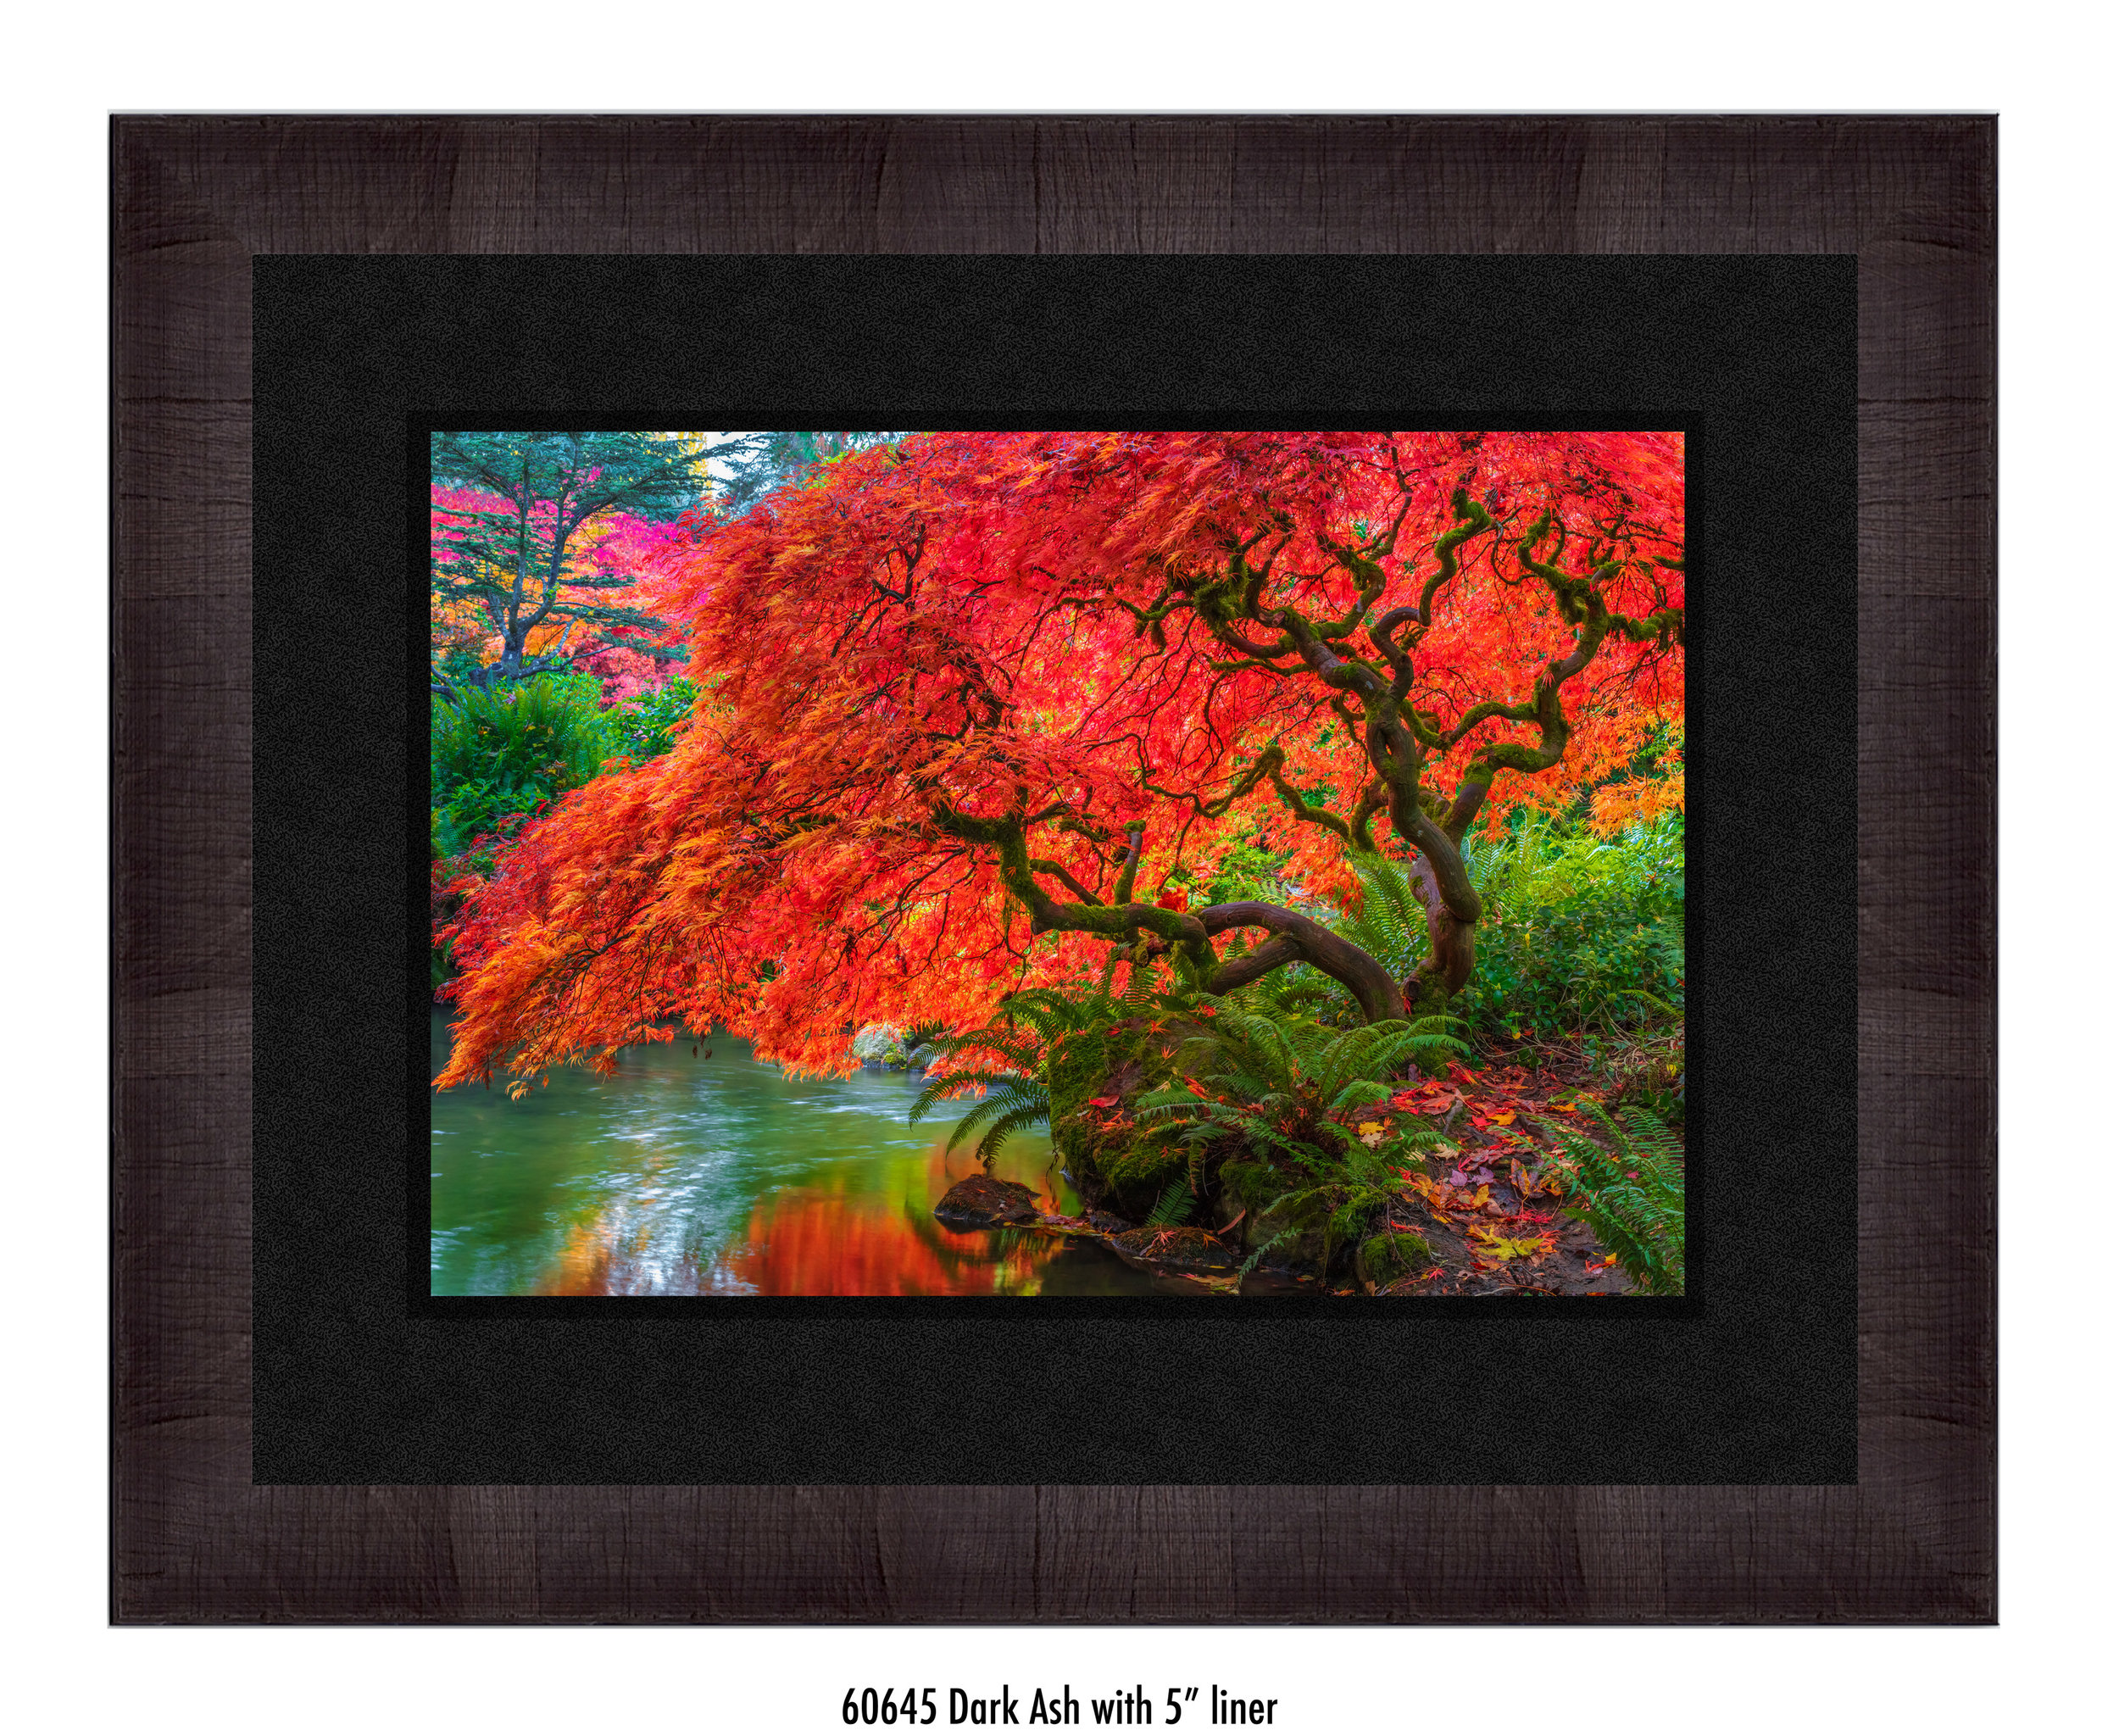 Tree-of-Fire-60645-5-blk.jpg